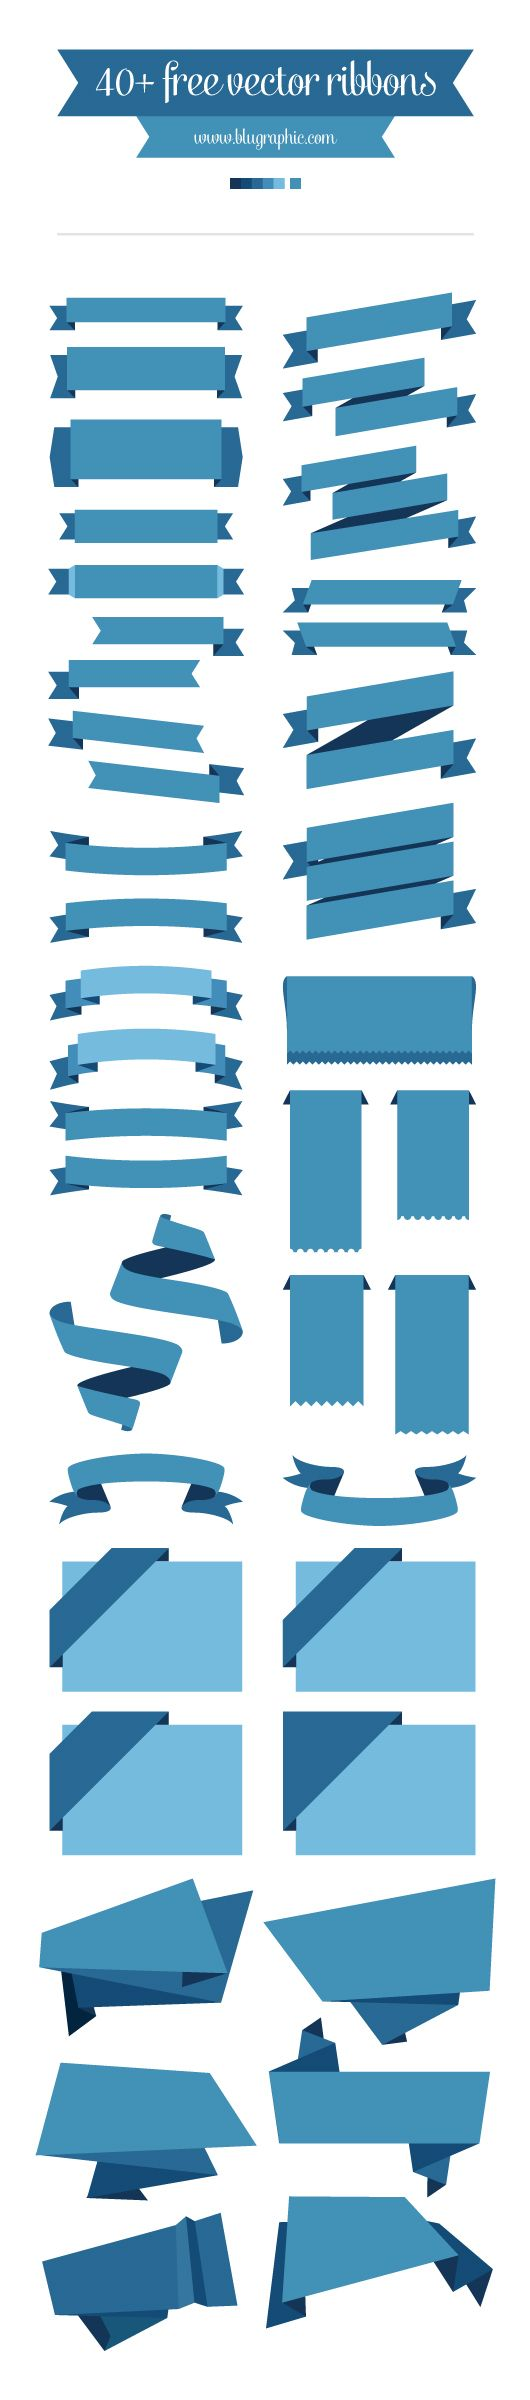 40+ Free Vector Ribbons!   #design